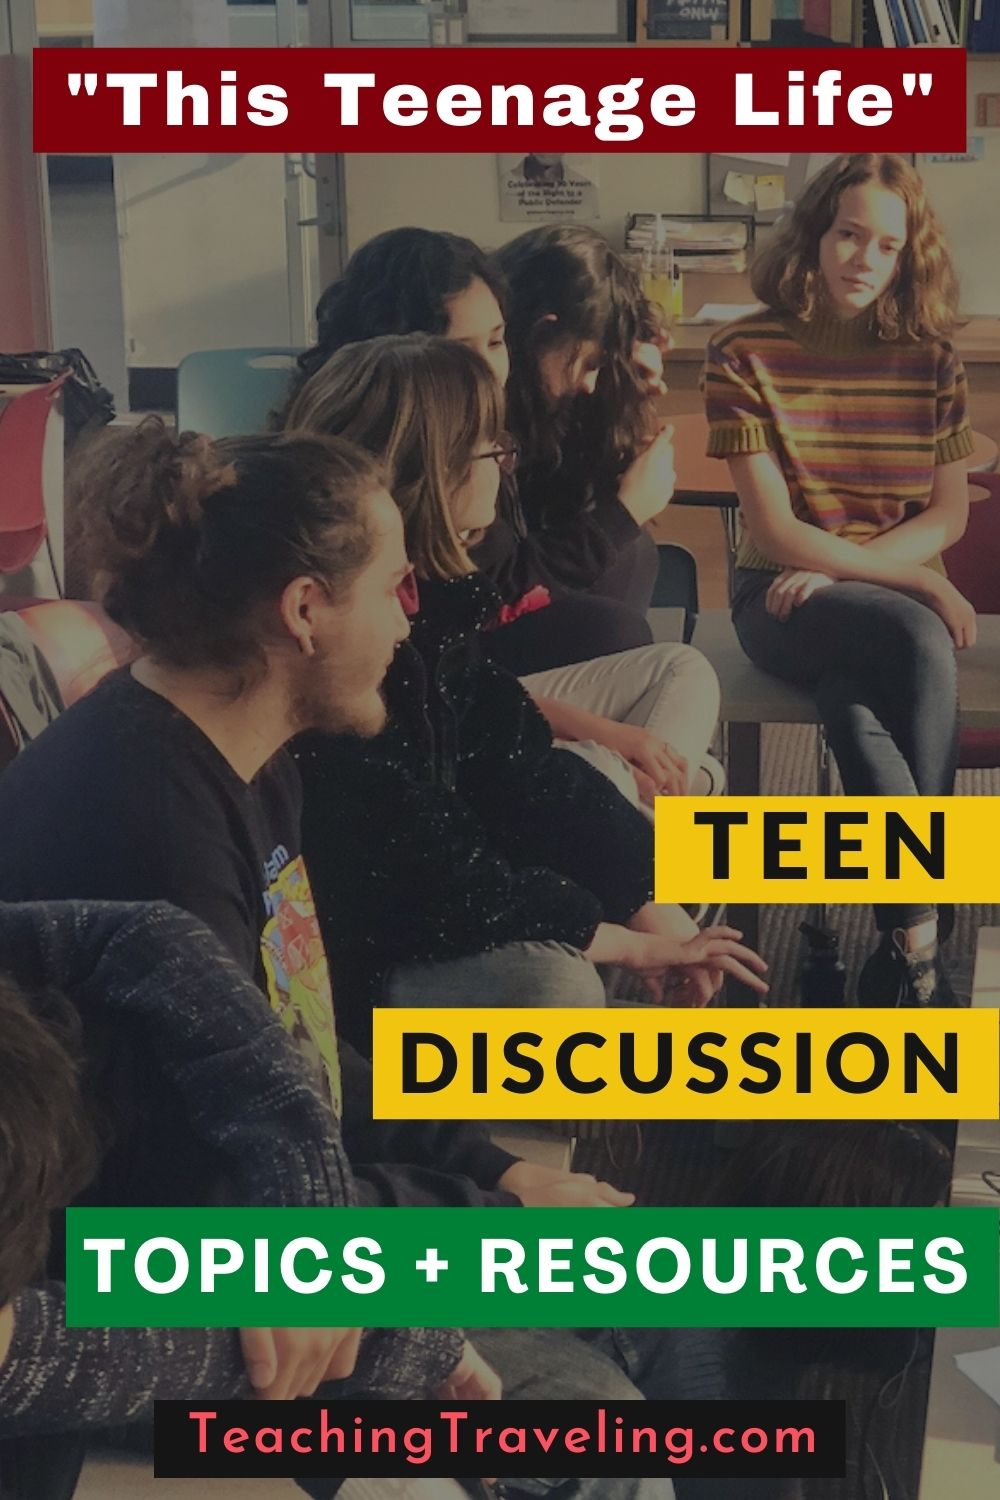 Discussion topics for teens